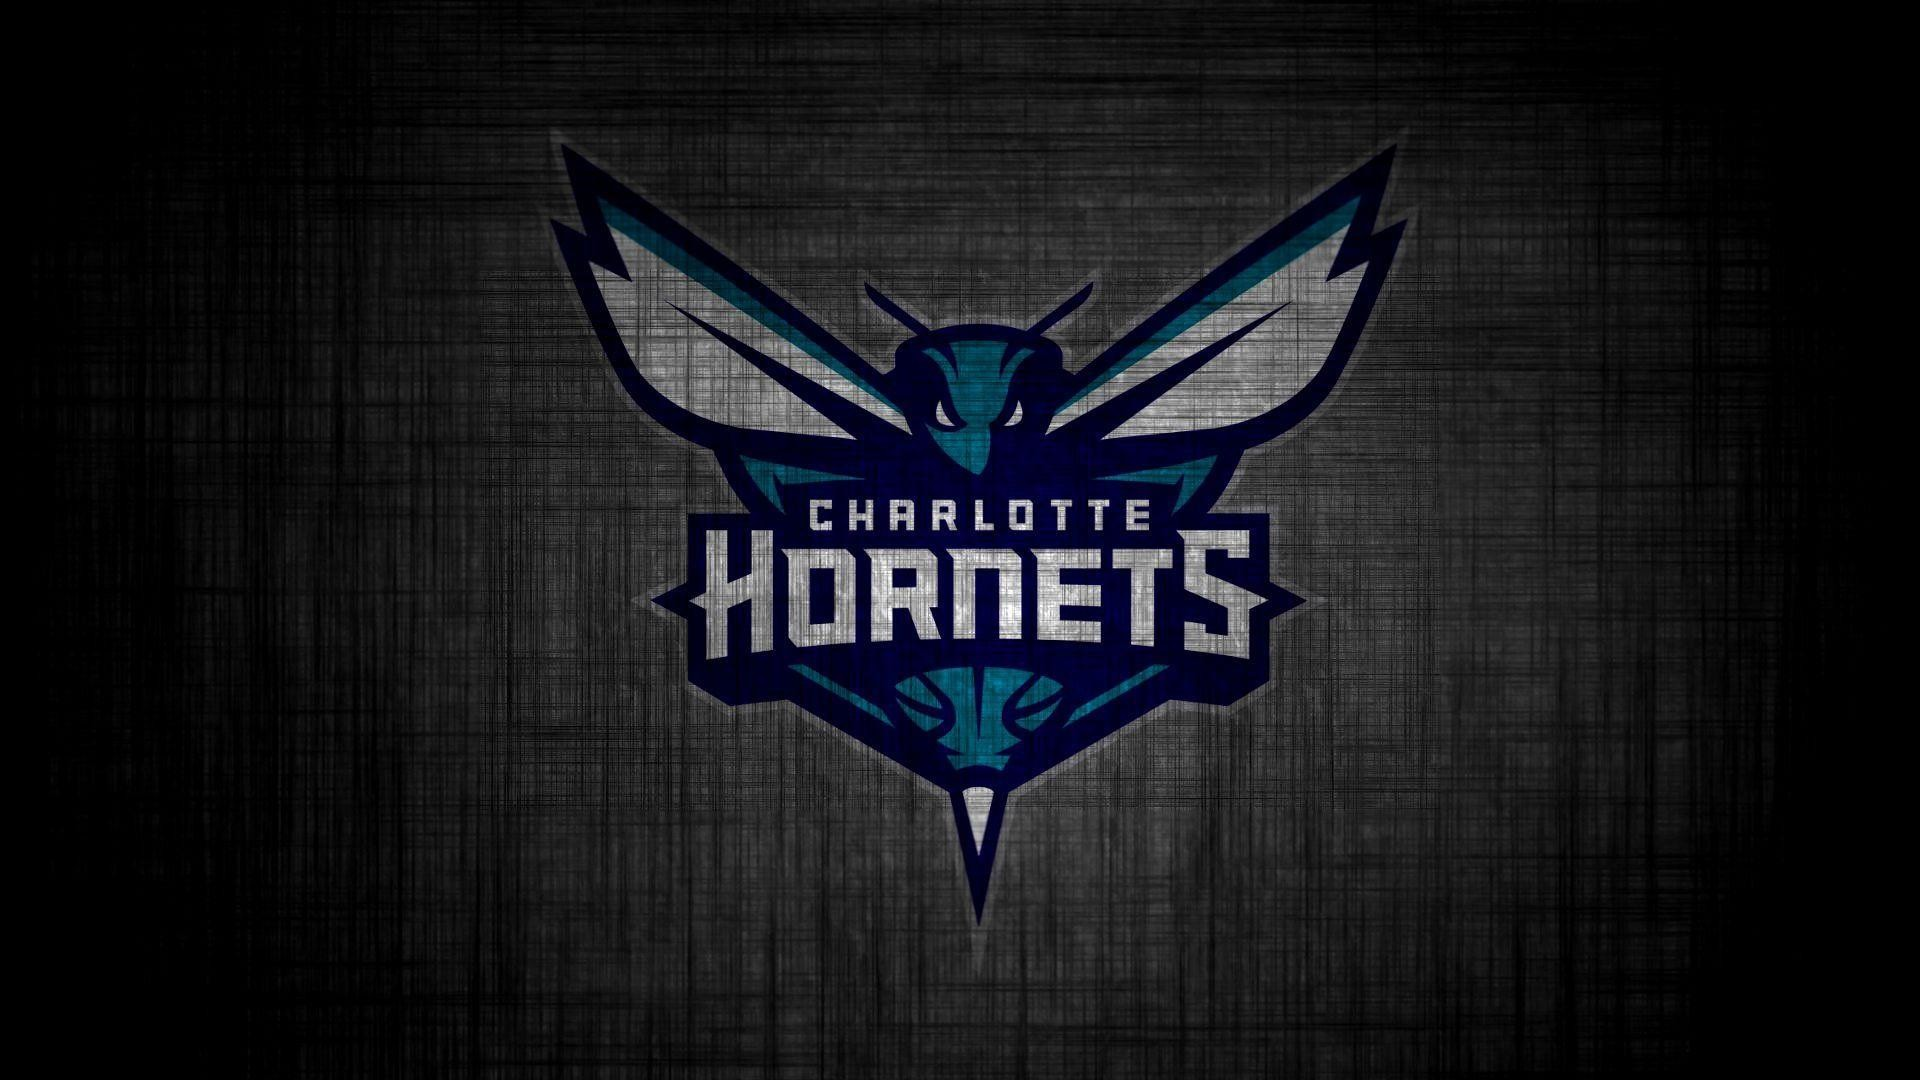 1920x1080 SOZ 49 Charlotte Hornets Wallpapers, Charlotte Hornets Full HD .